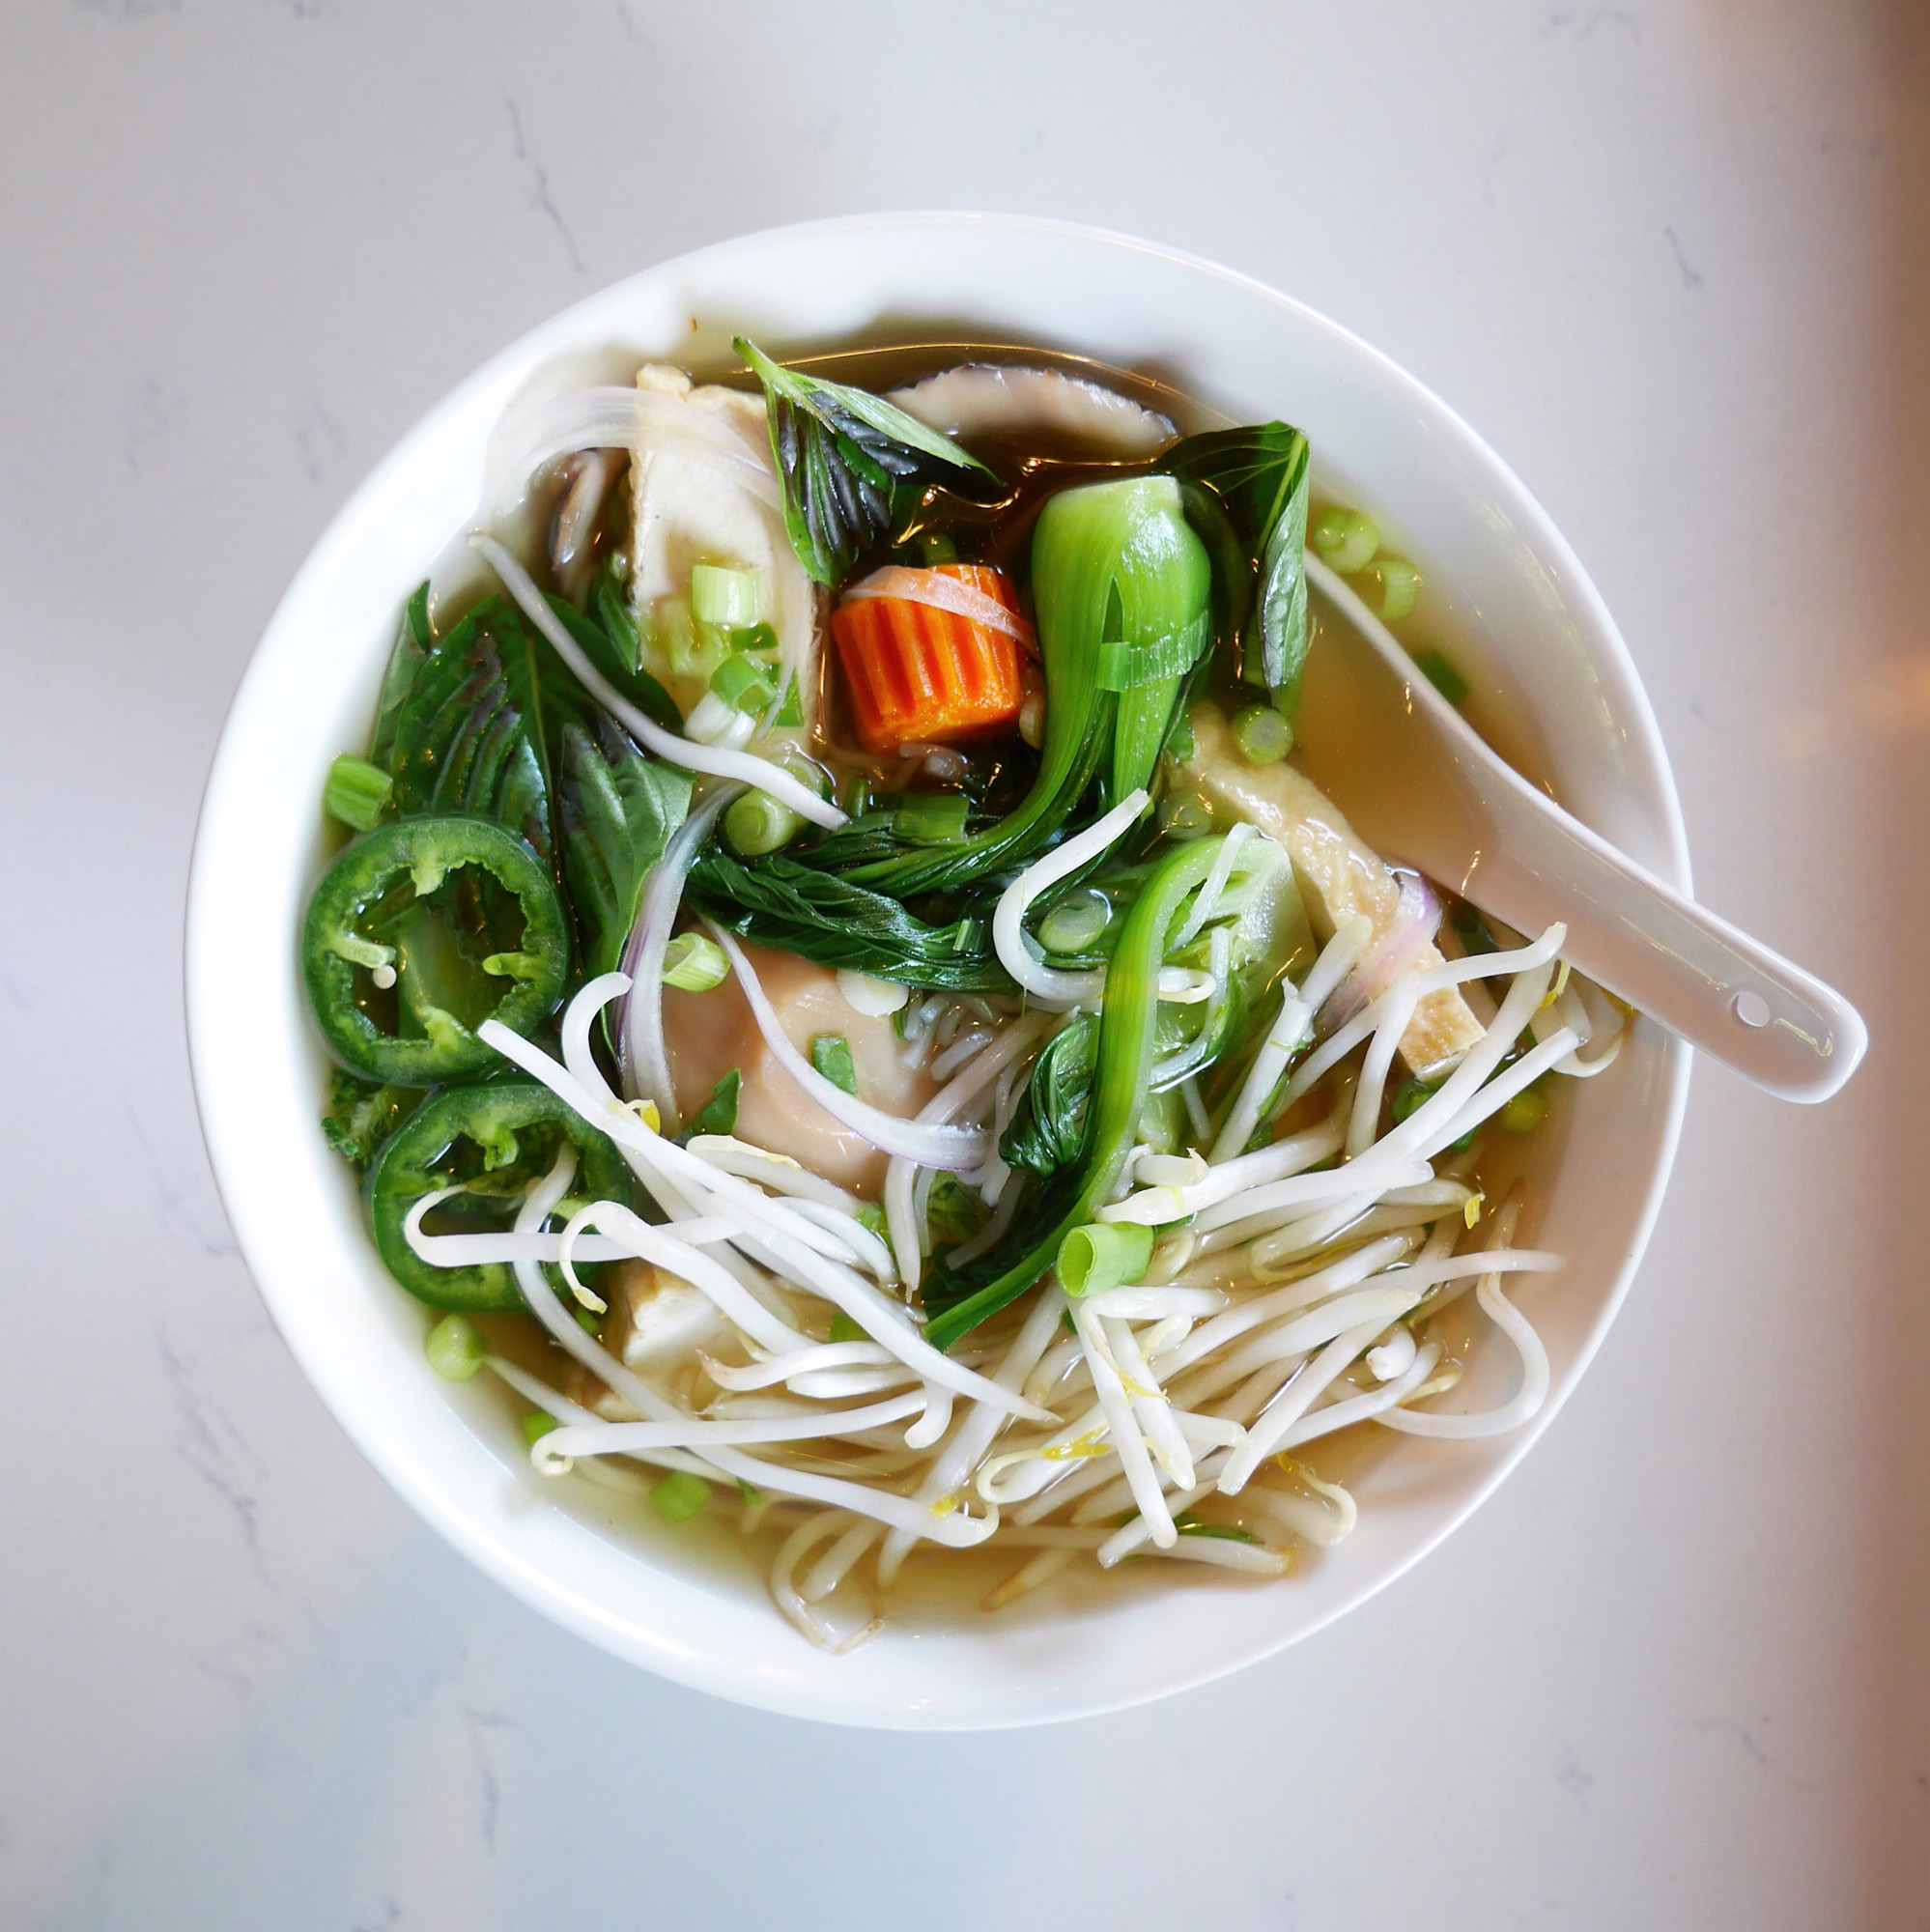 A photo of vegan pho at Anchoi Kitchen + Bar, which comes with baby bok choy, bean sprouts, and slices of bright-green jalapeno